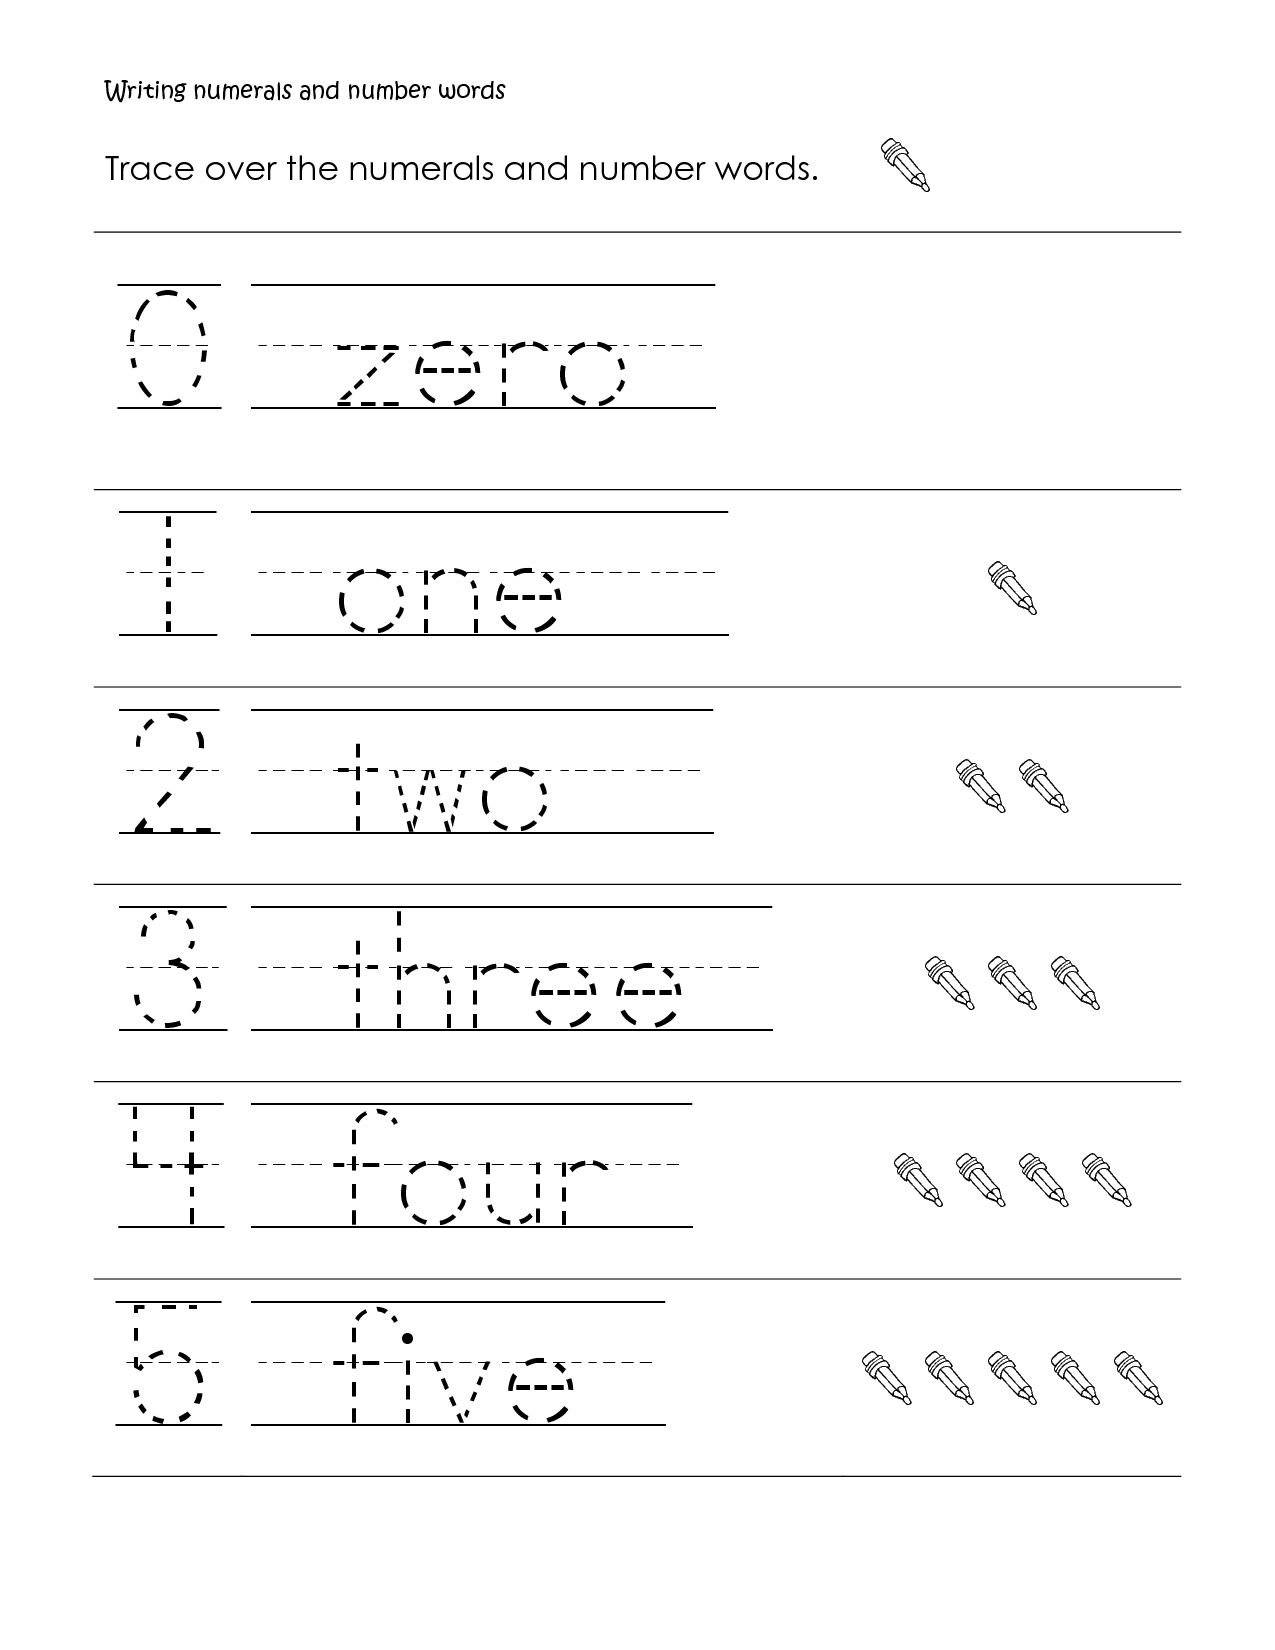 Worksheets Fifth Grade Writing Worksheets first grade math worksheet writing numbers and number words